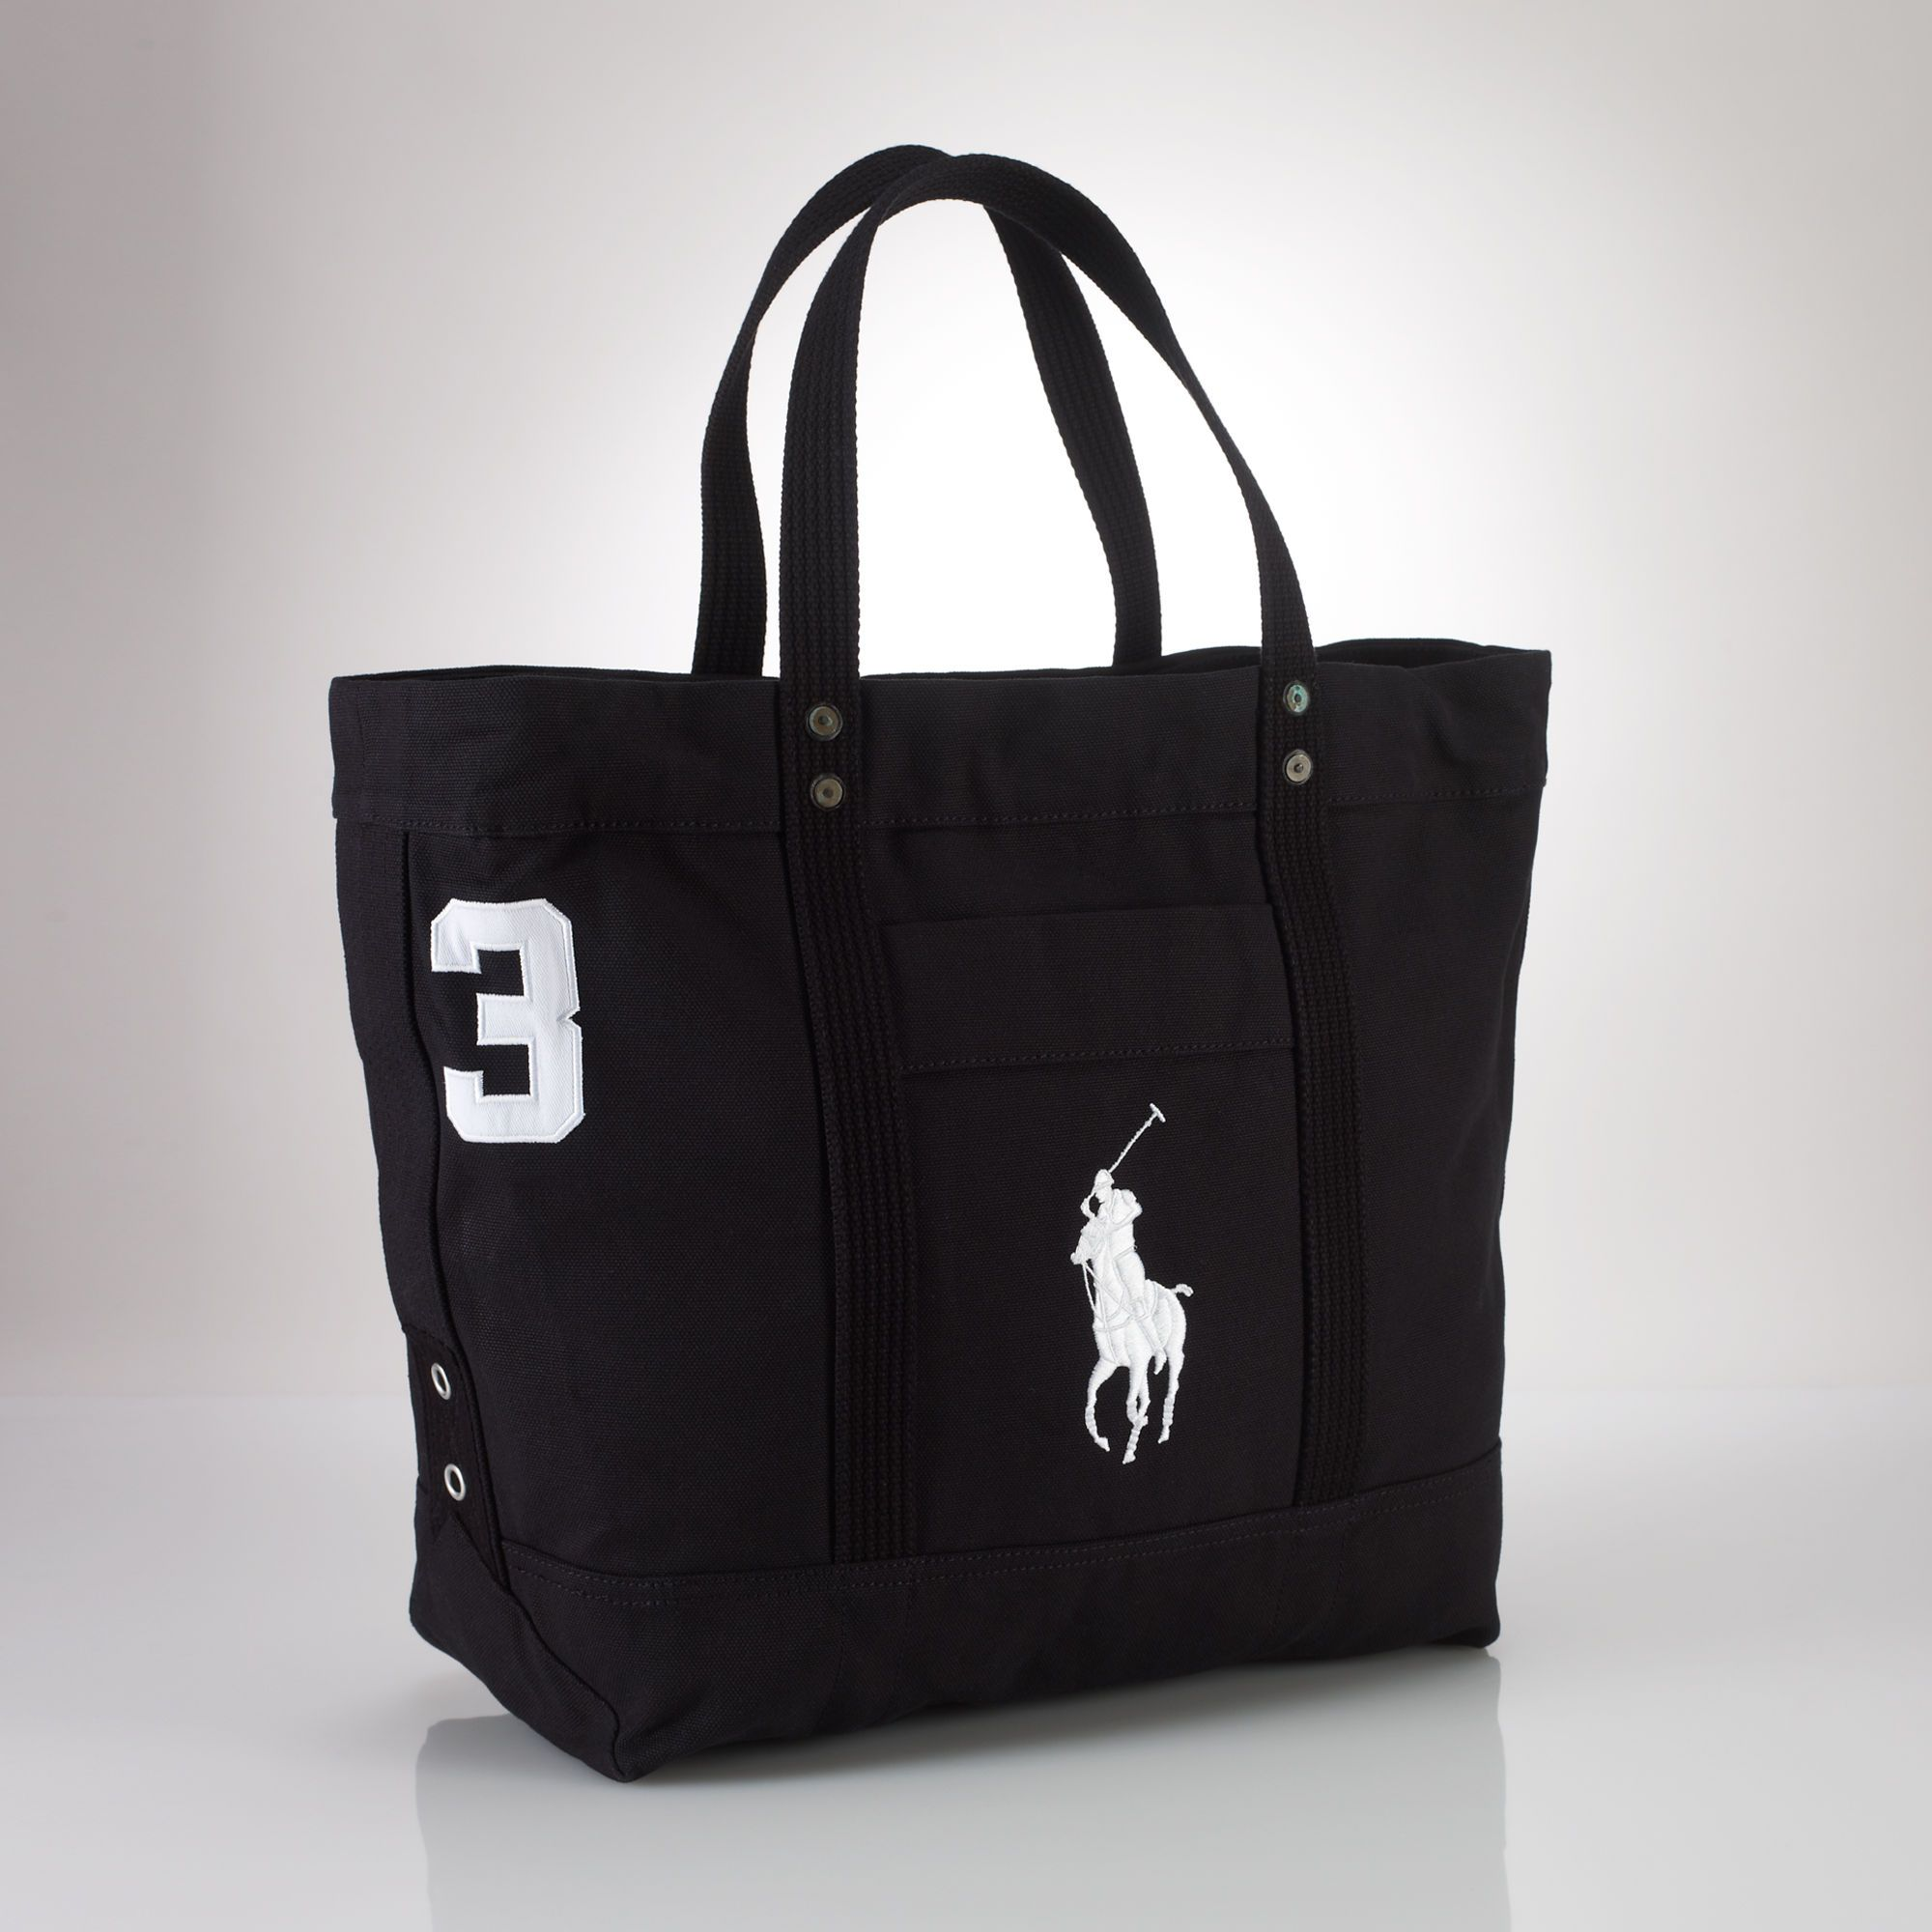 6989ee4bb688 Big Pony Zip Tote - Totes Bags   Business Accessories - RalphLauren ...